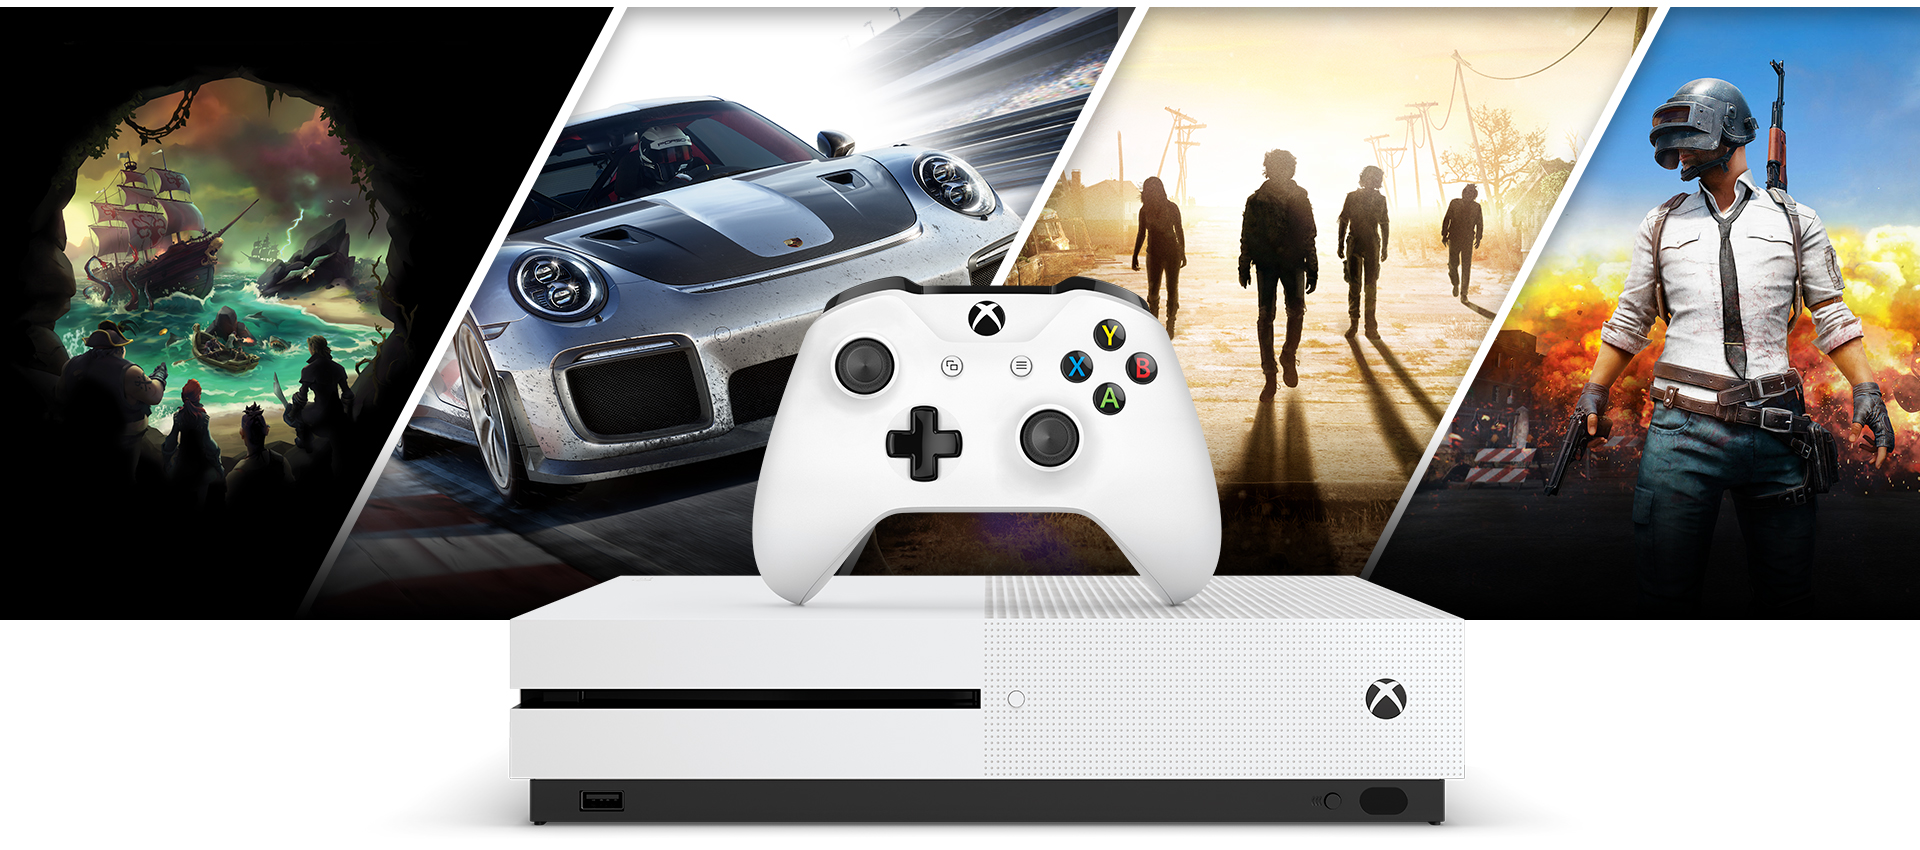 Microsoft Xbox One S 1tb Playerunknowns Battlegrounds Billig Lenovo Yoga Book 101ampquot Fhd Touch Atom X5 Z8550 4gb 64gb Integrated Graphics Win10 Home Carbon Black